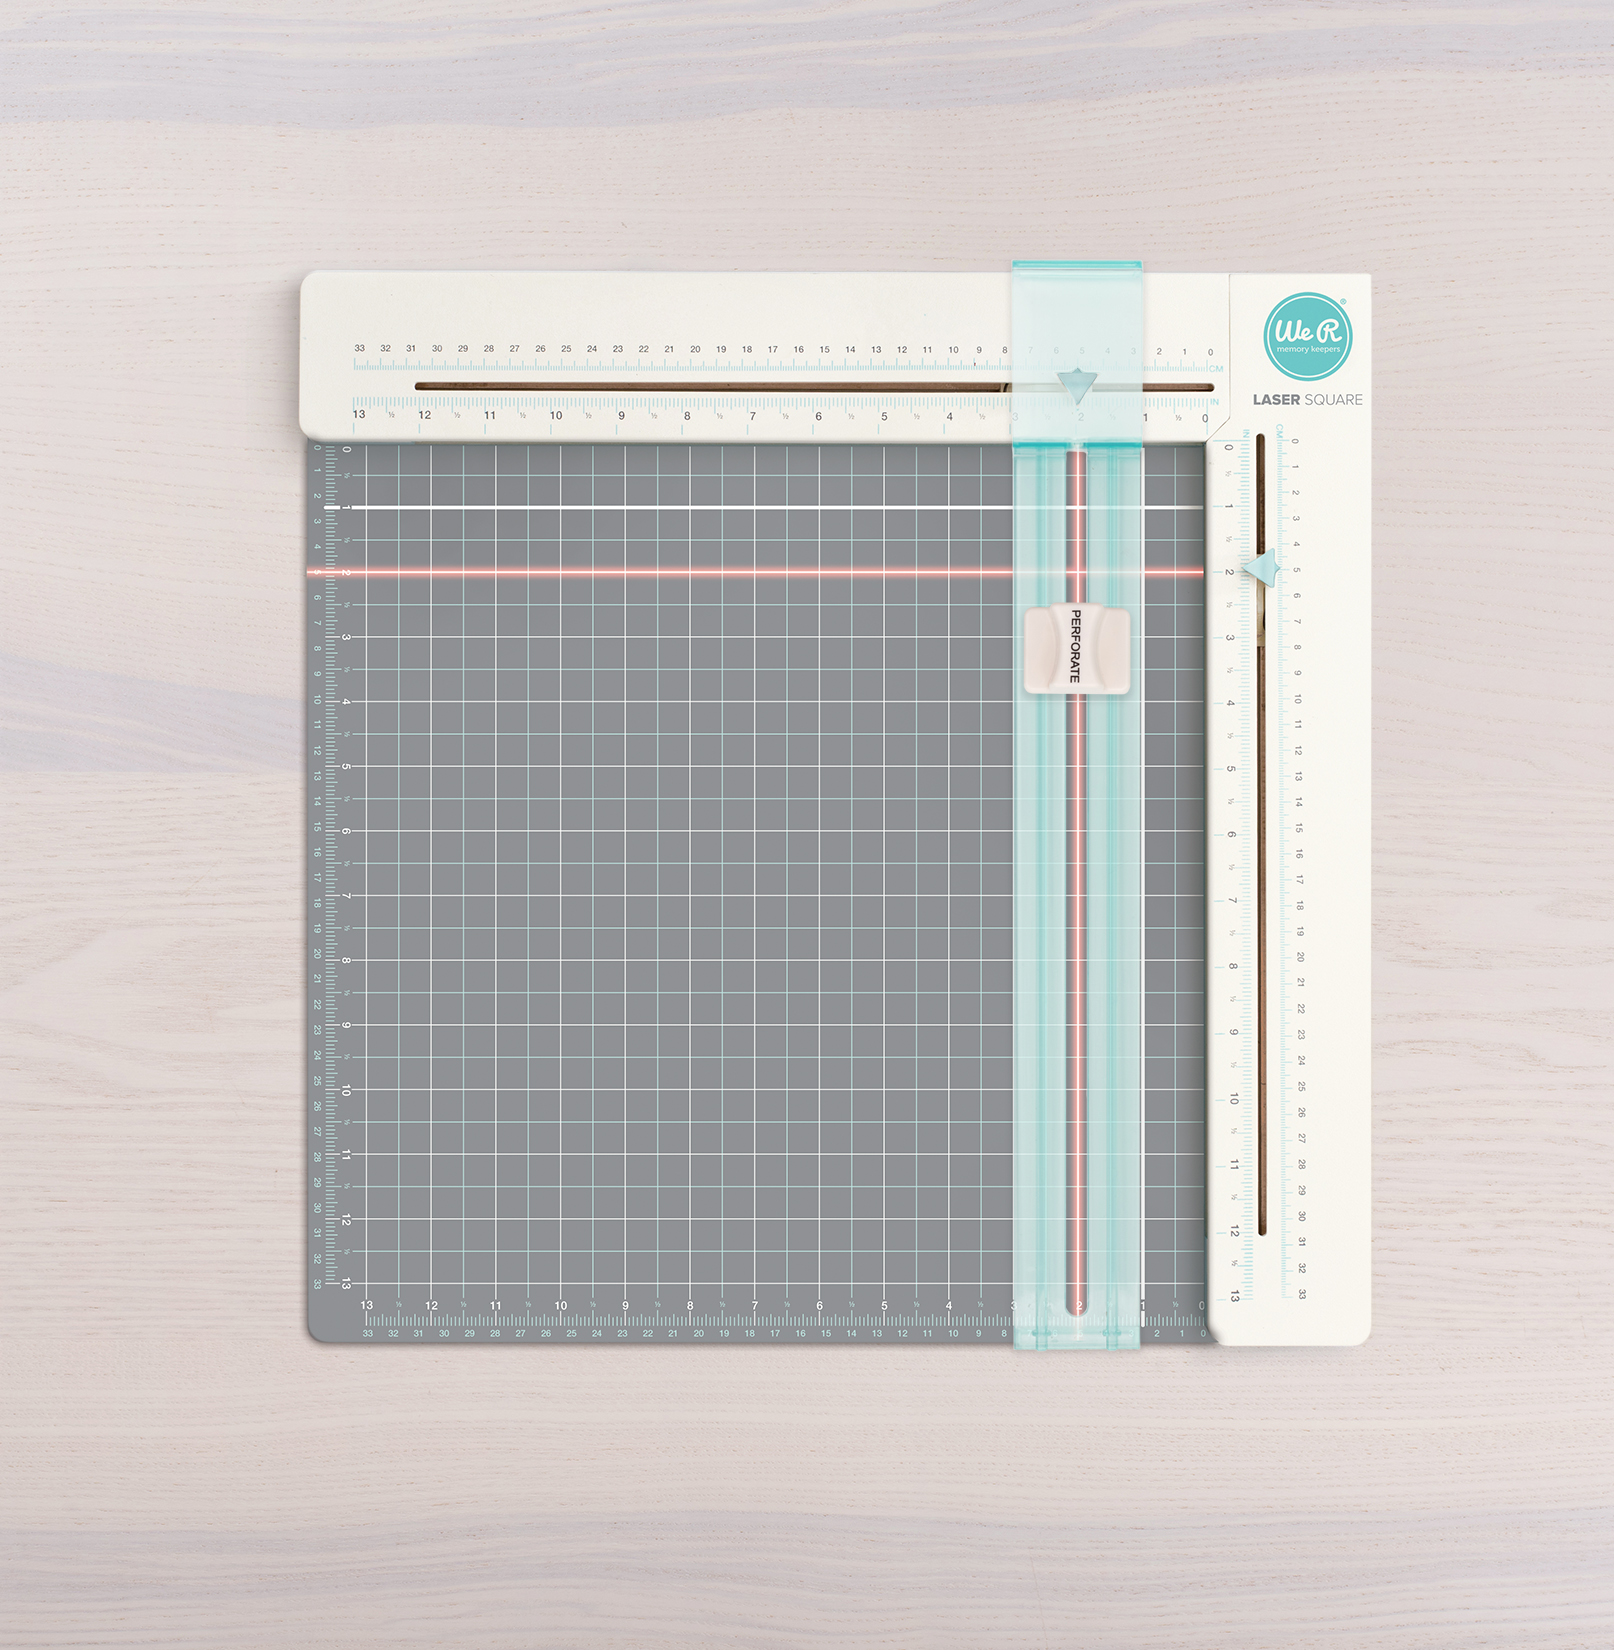 We R Memory Keepers Laser Square Trimmer